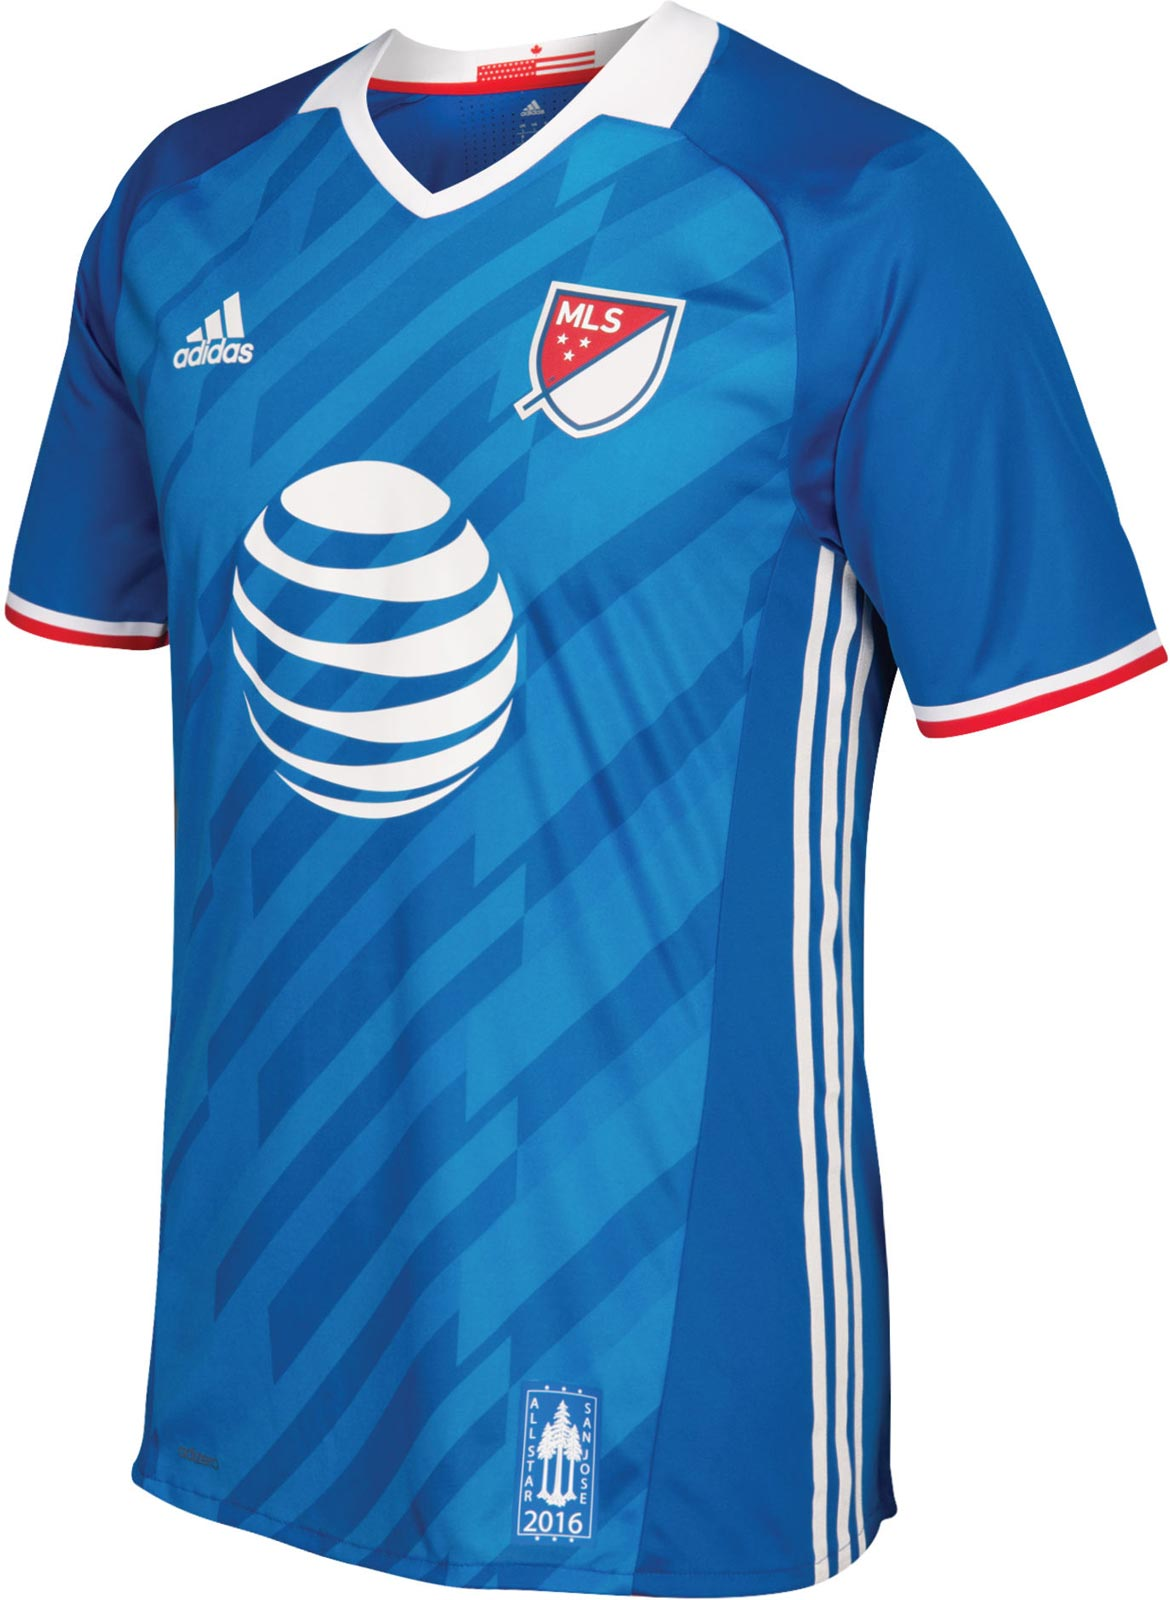 MLS 2016 All-Star Jersey Revealed - Footy Headlines